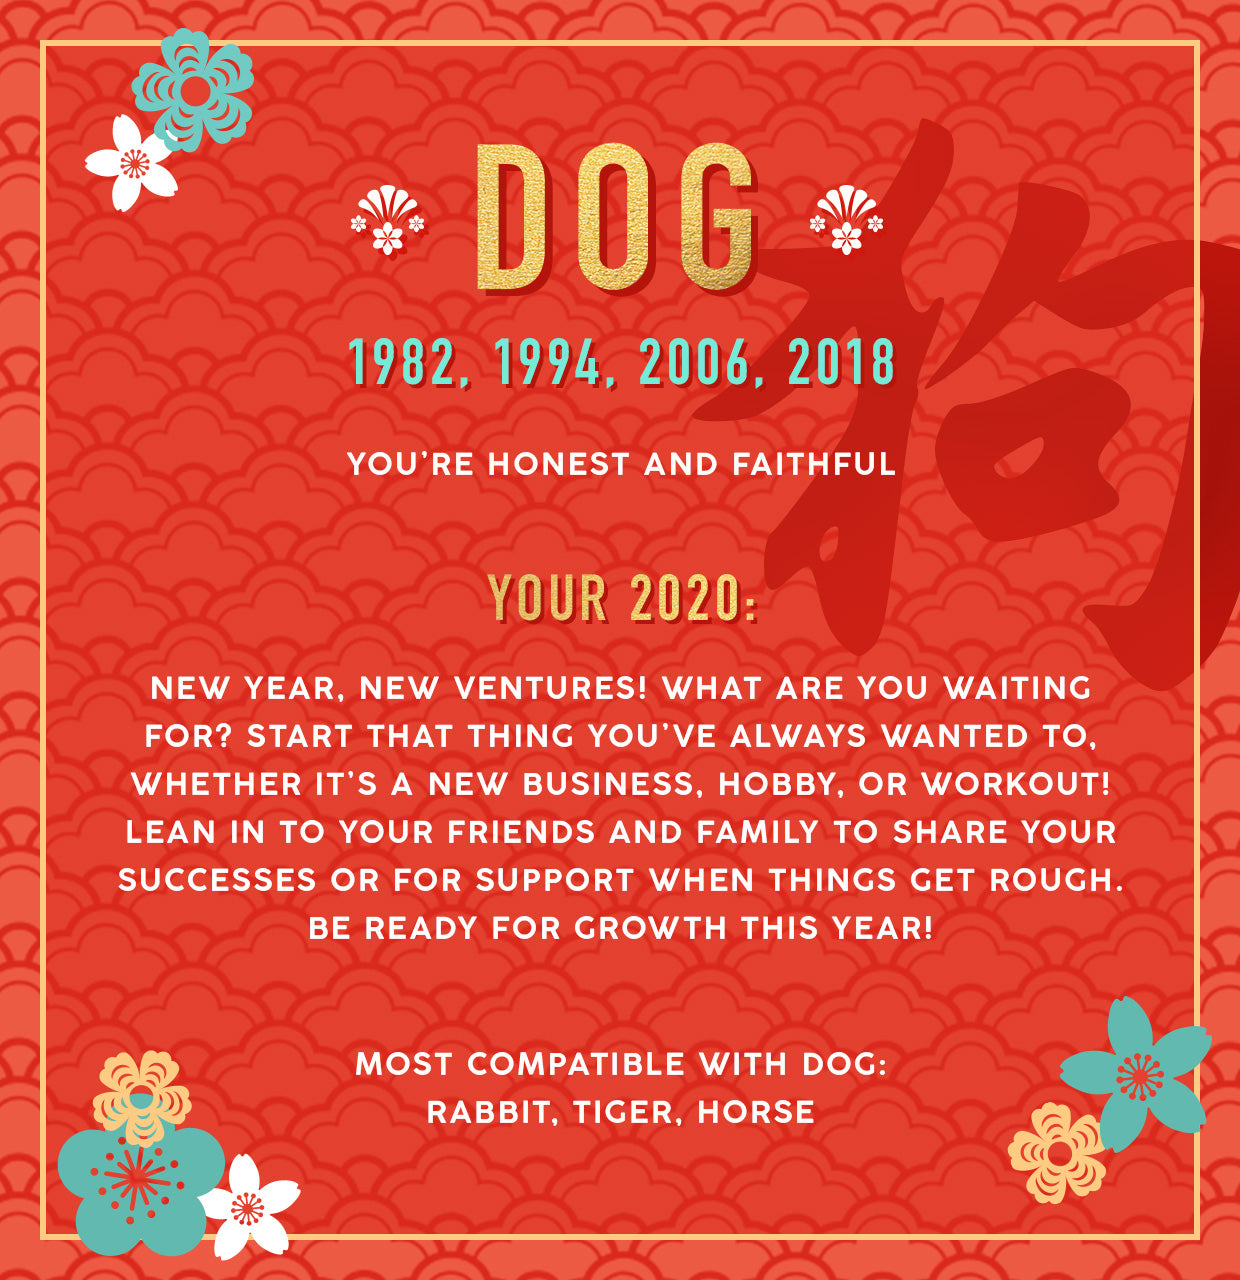 Dog Lunar New Year Collection Banner Image